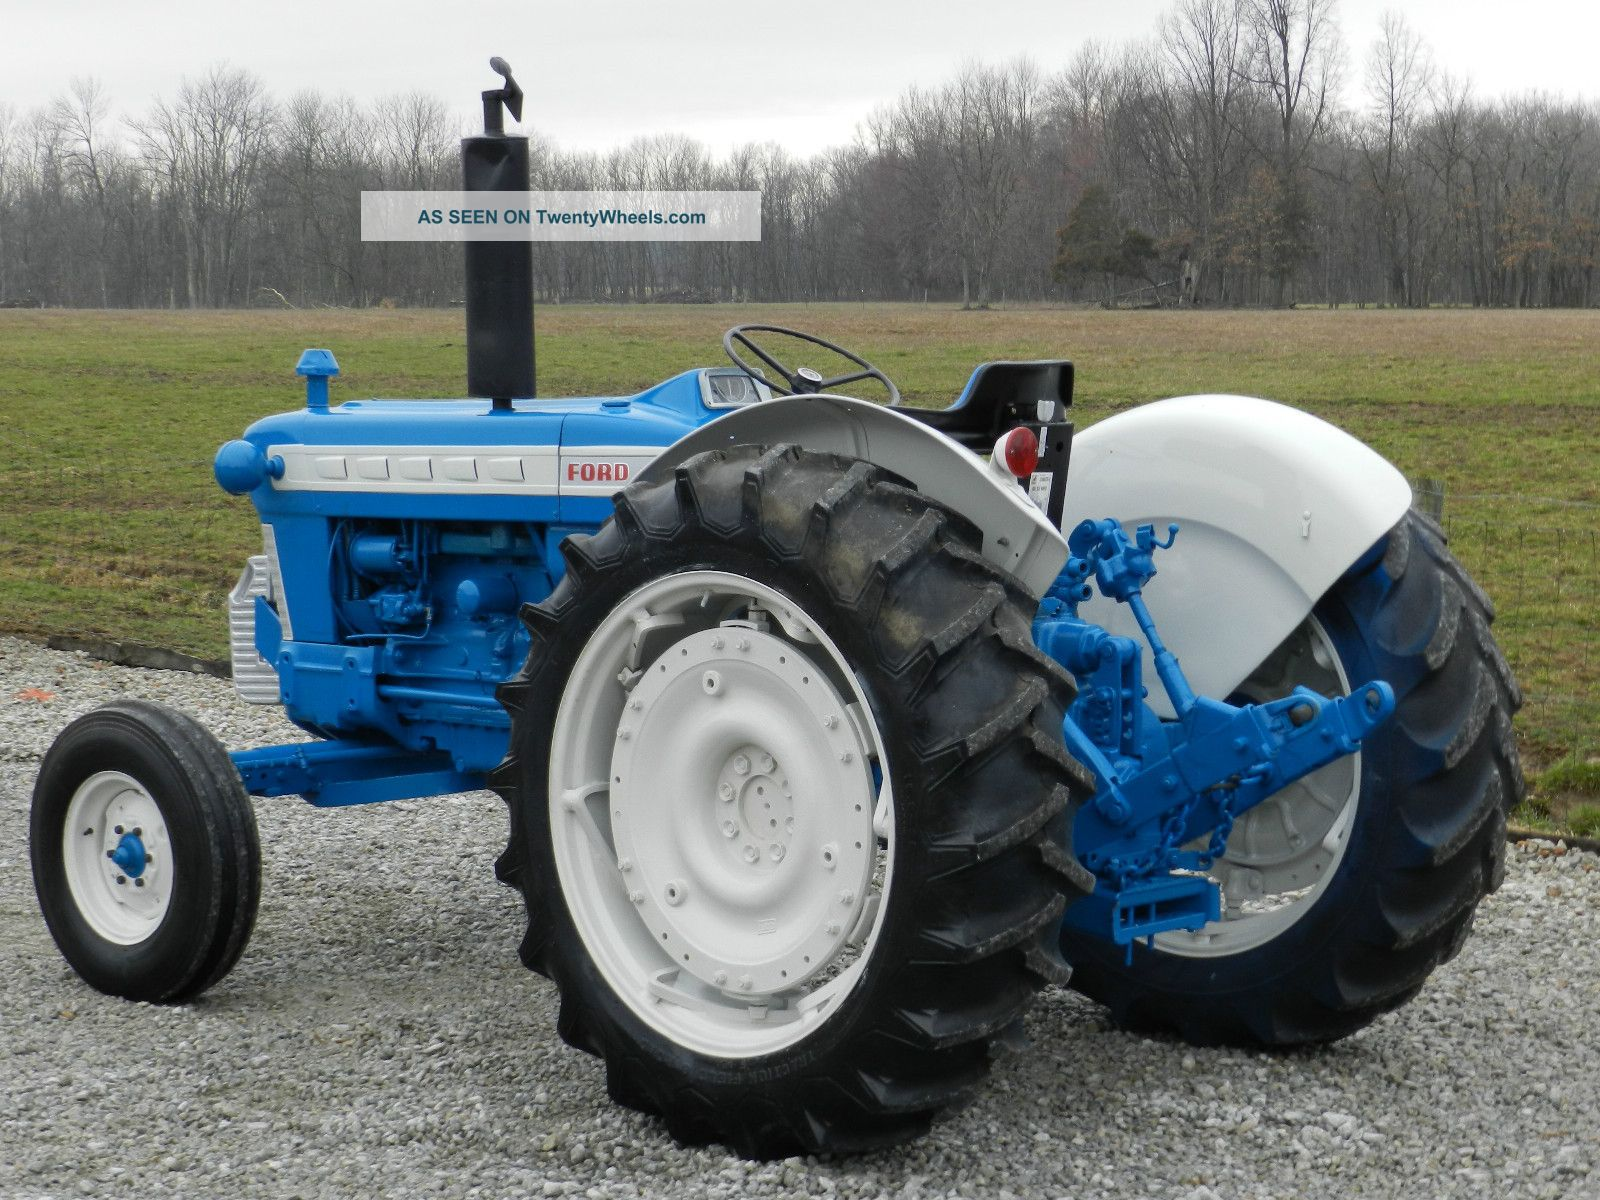 Ford 5000 Tractor Specs : Ford tractor diesel restored sharp